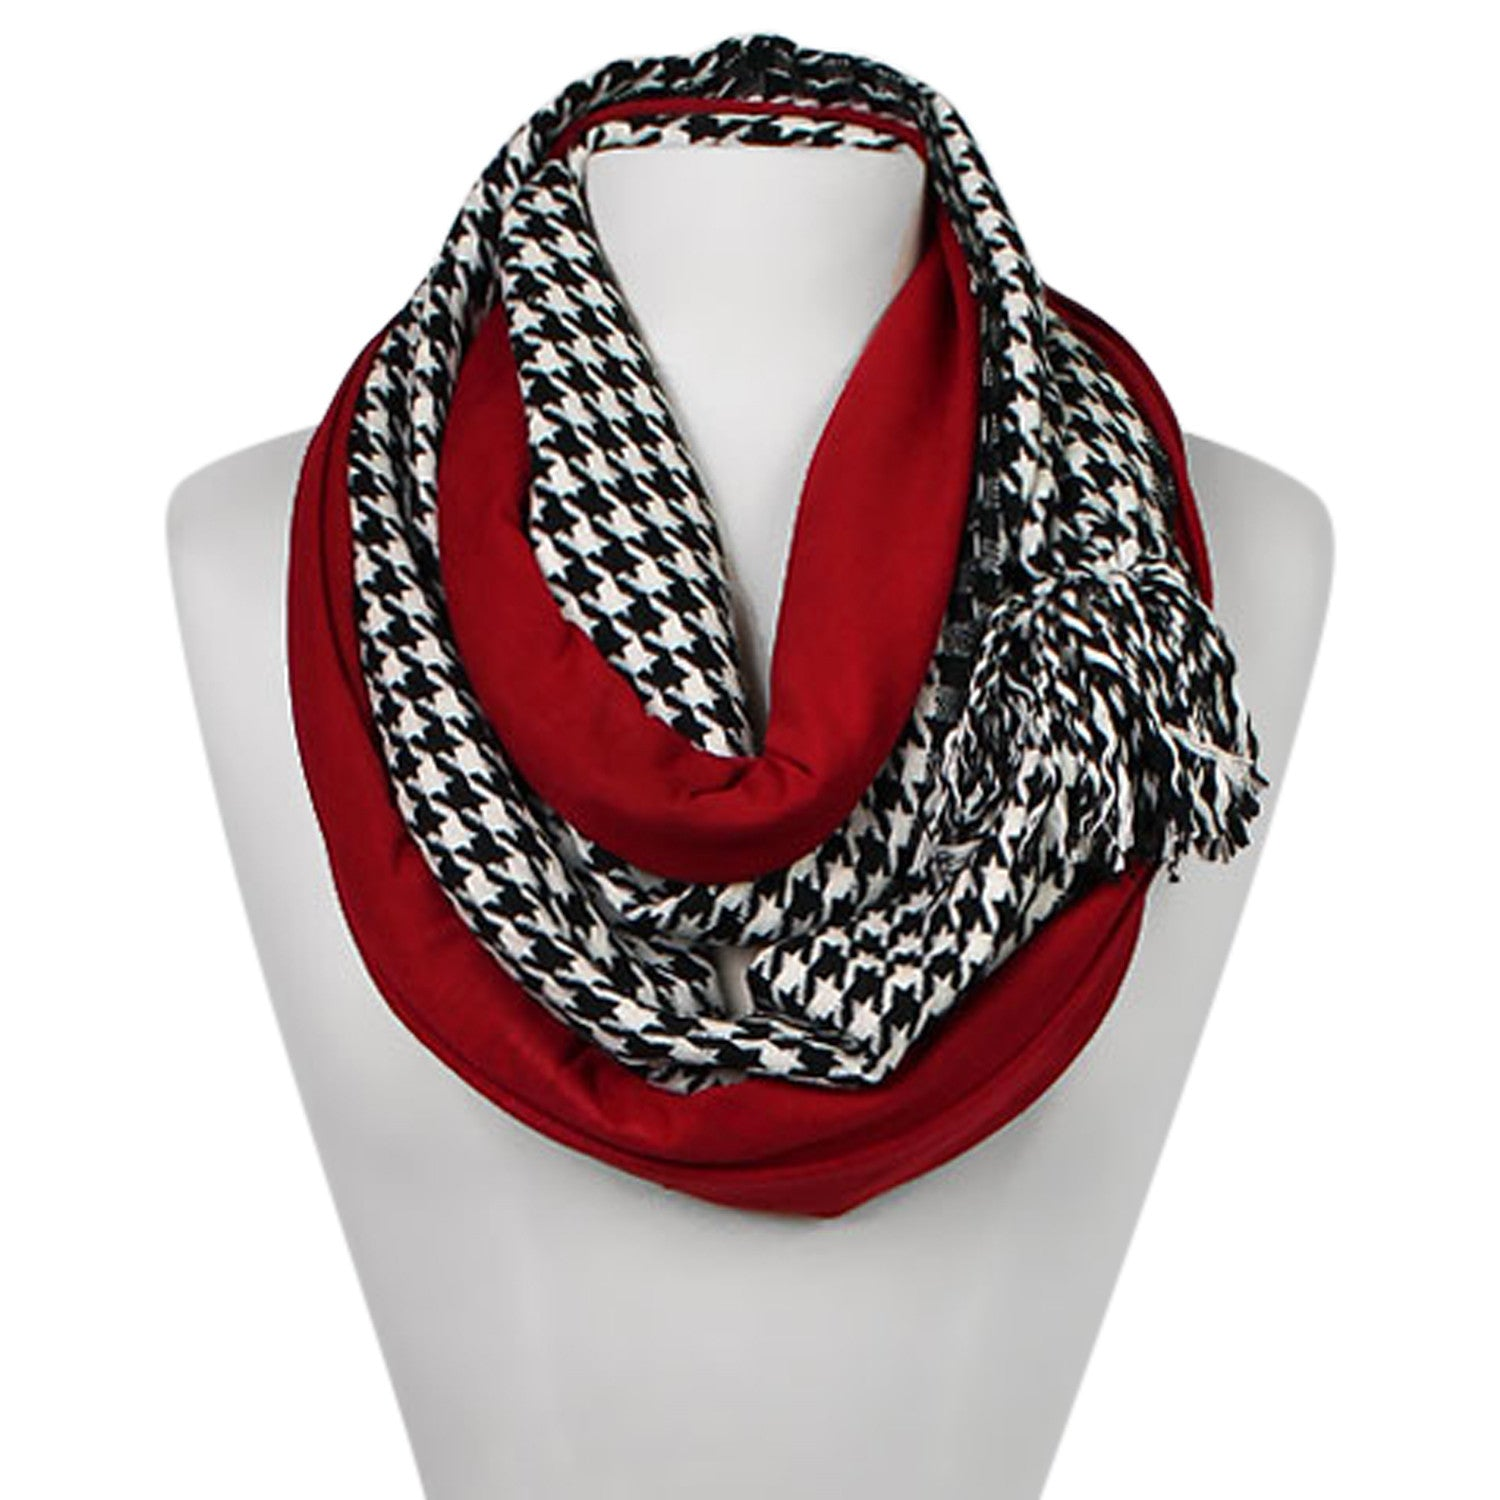 Houndstooth and Crimson Infinity Jersey Scarf with Pom Pom